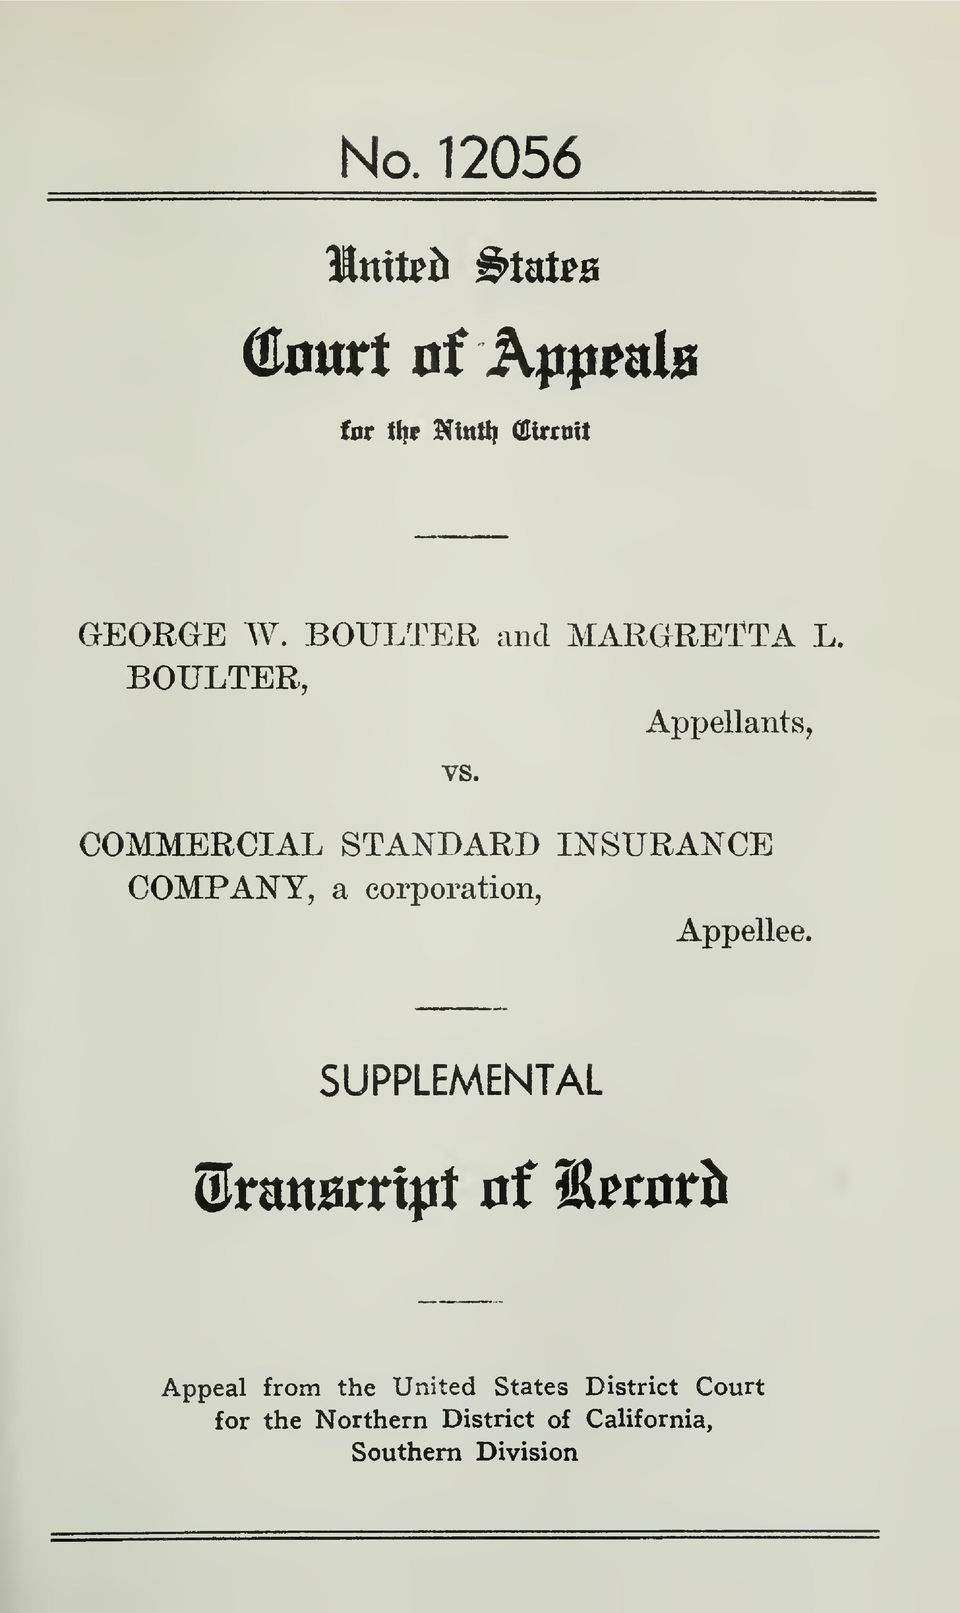 AppellantSj COMMERCIAL STANDARD INSURANCE COMPANY, a corporation, Appellee.